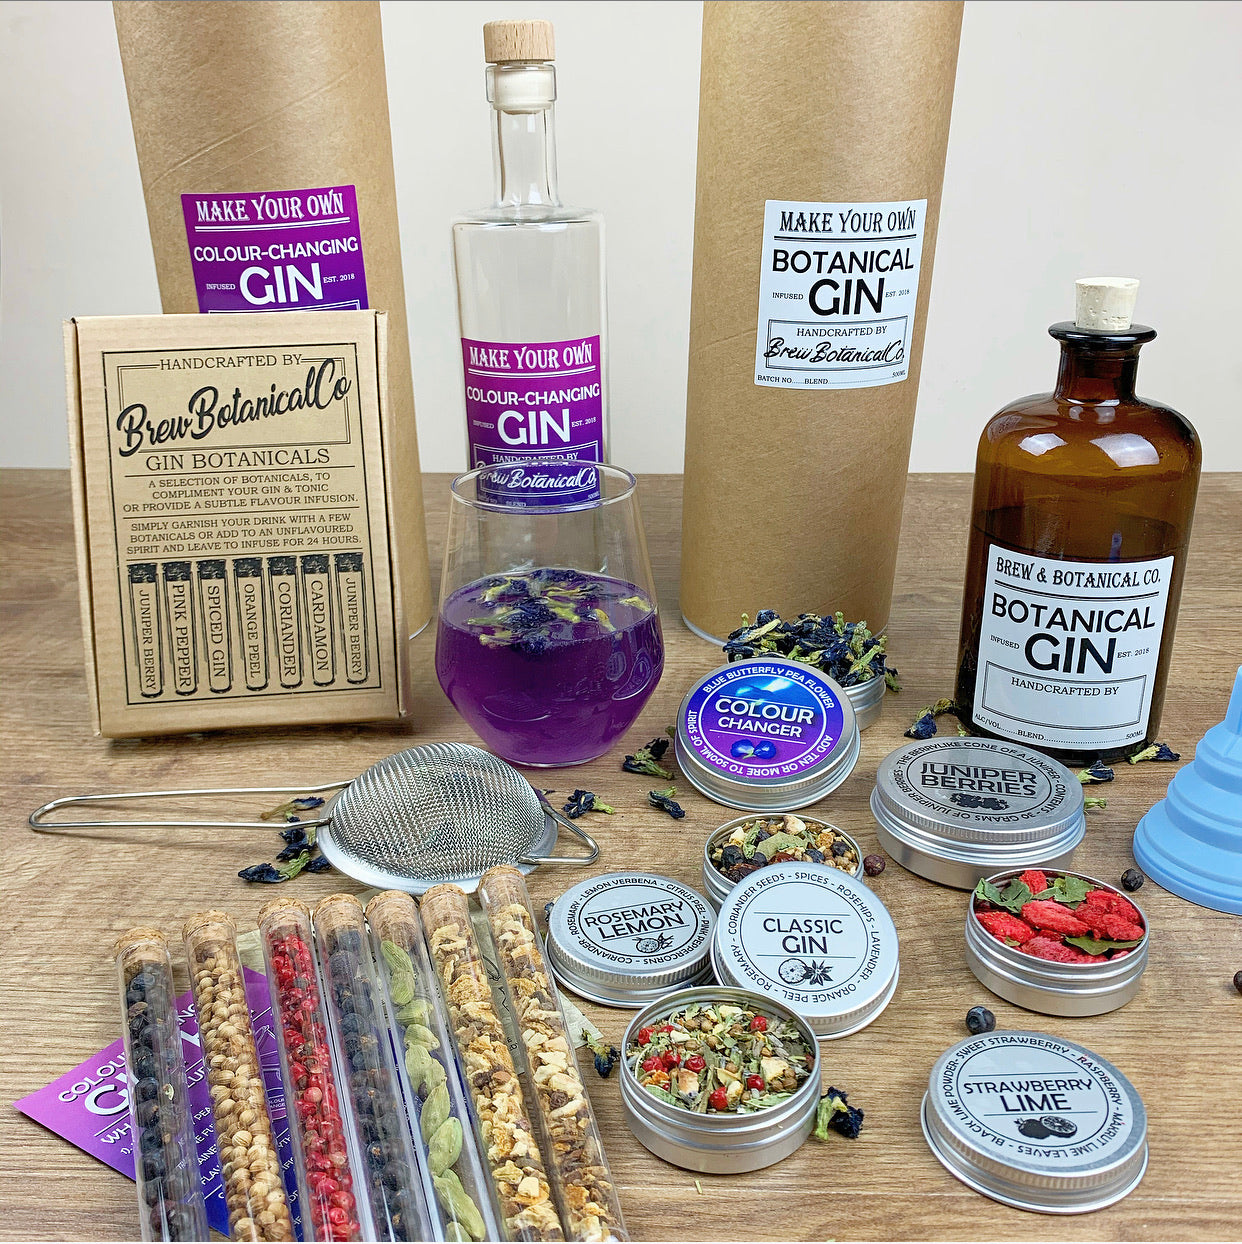 The Ultimate Gin Making Set | Make Your own Compound Gin, Colour-Changing & Garnish Set.